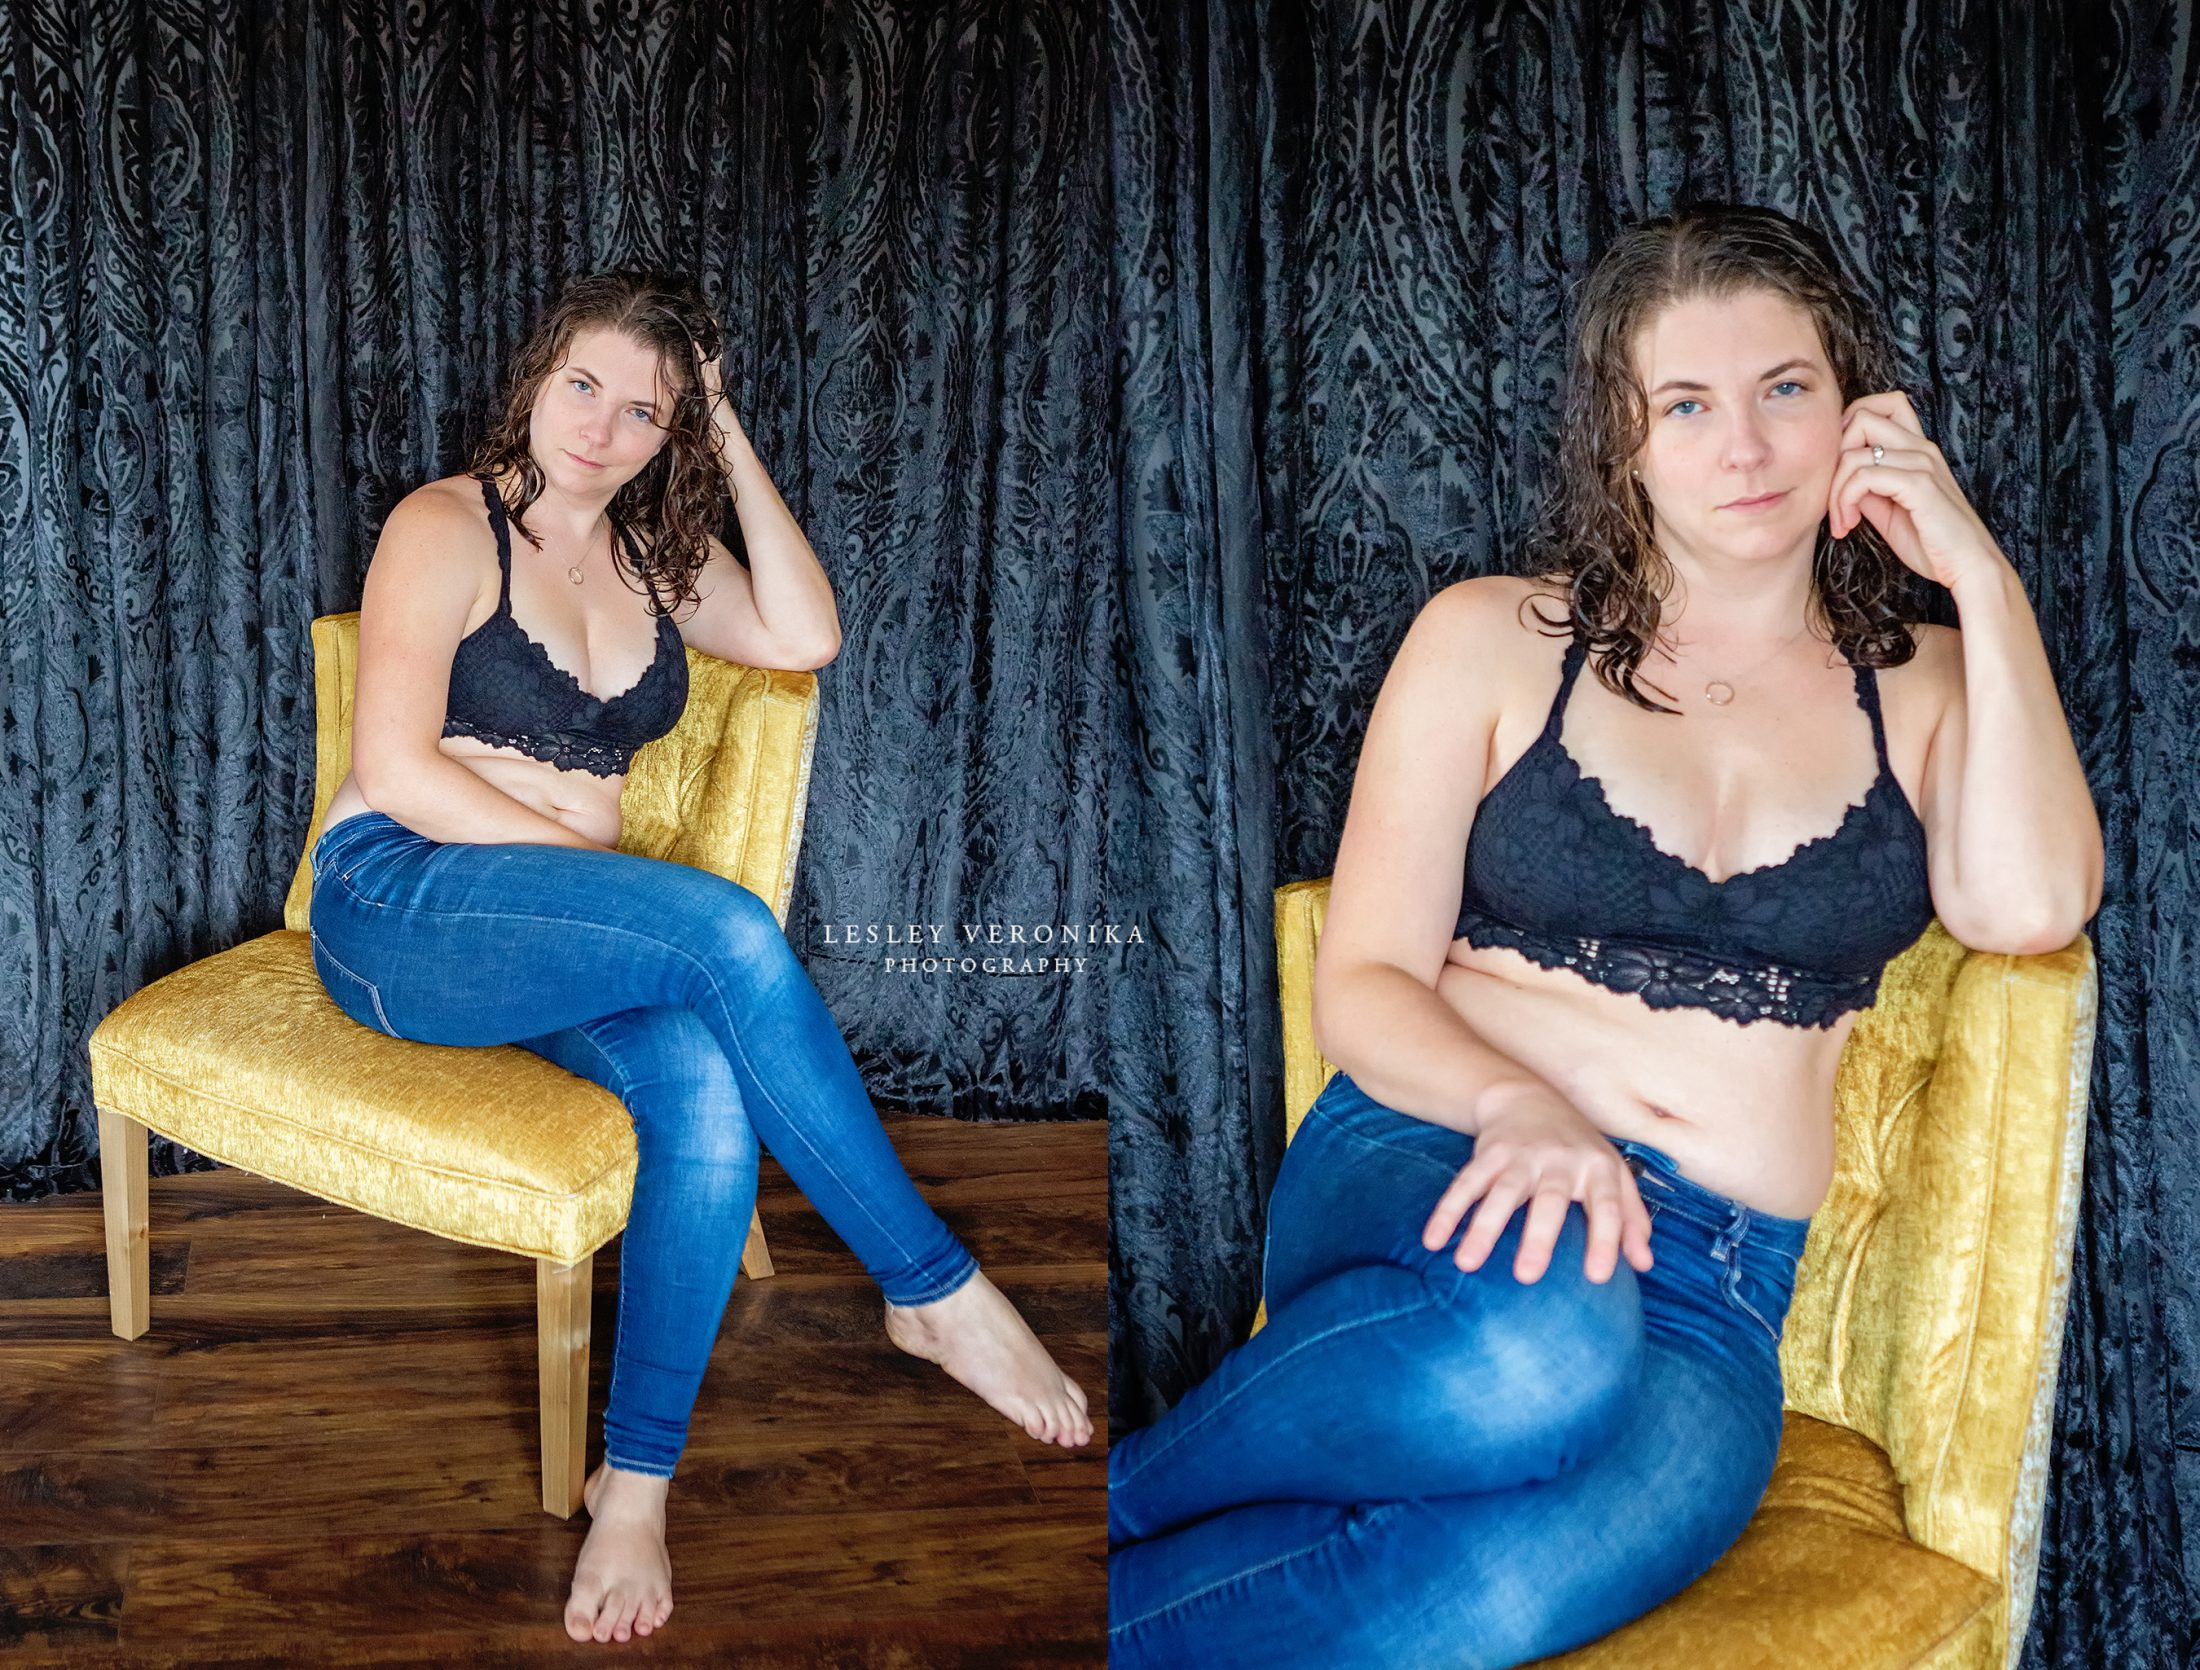 body positivity, off your beauty standards, love yourself, body positivity articles, boudoir portraits